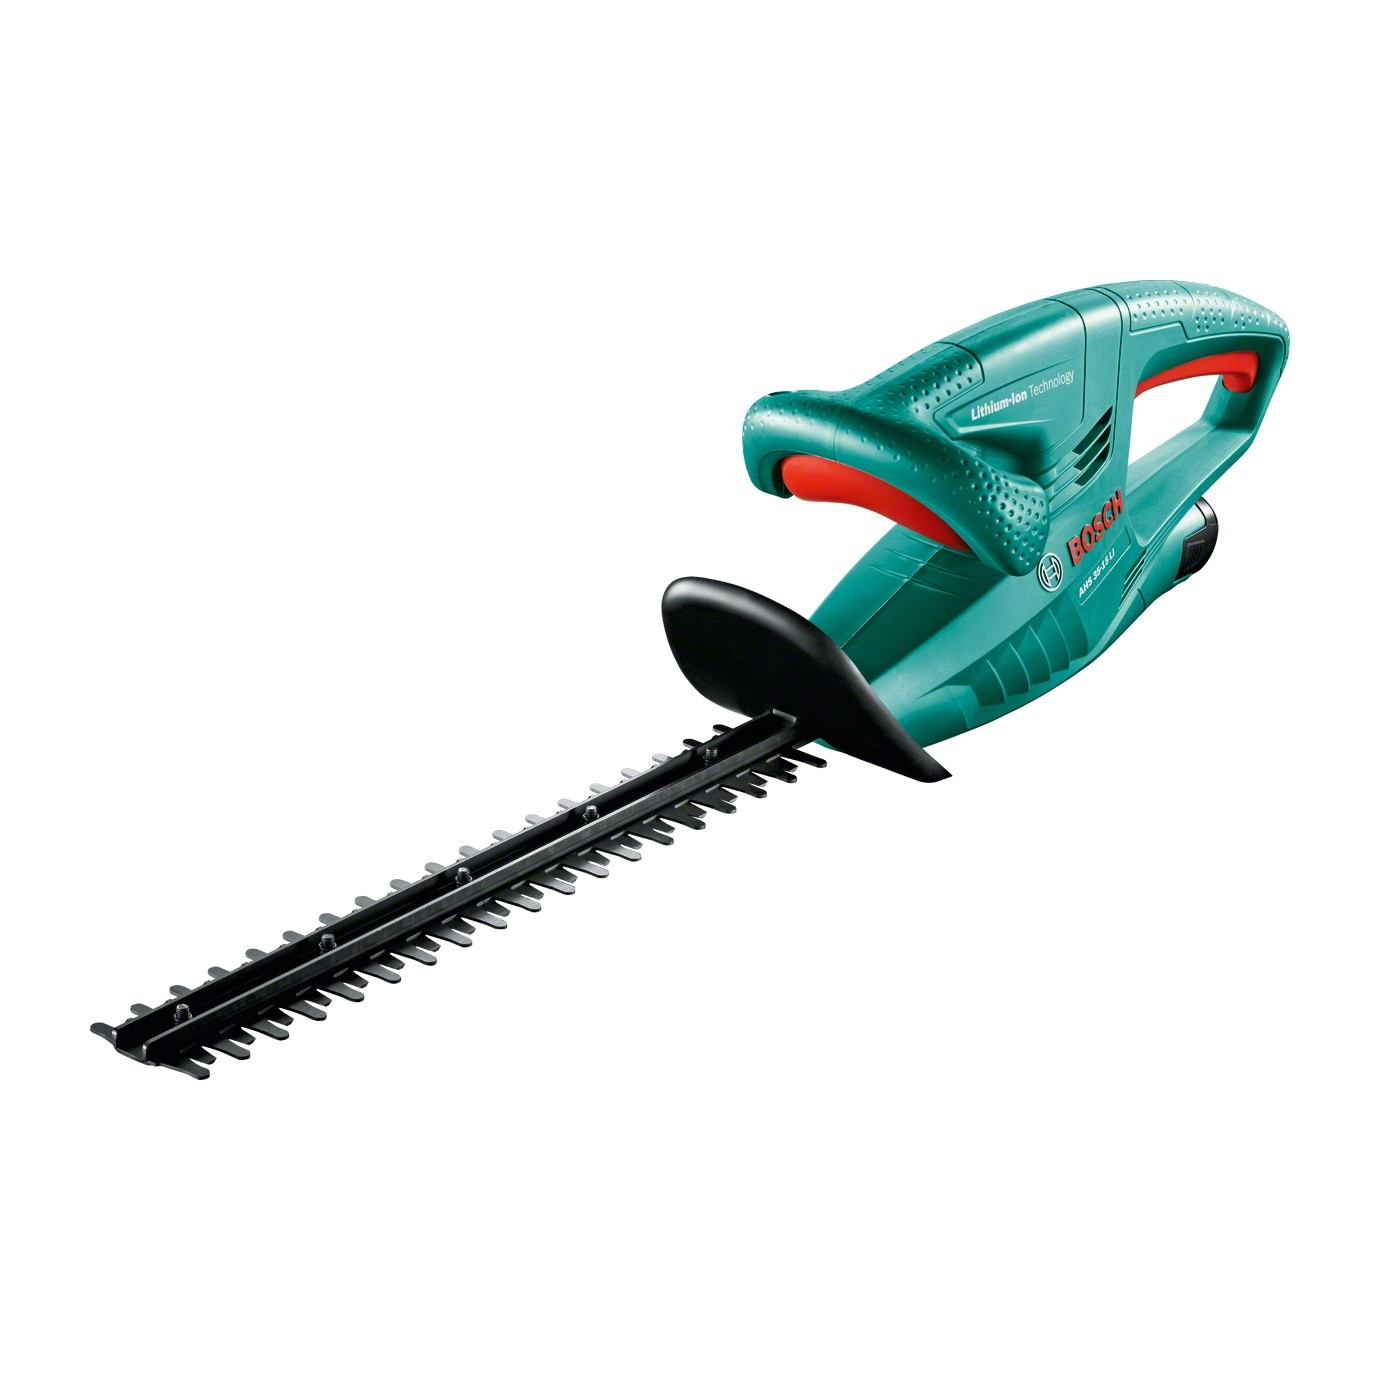 Bosch Green AHS 35-15 LI 10.8v Cordless Hedge Cutter inc 1x 2.0Ah Batt 0600849B71